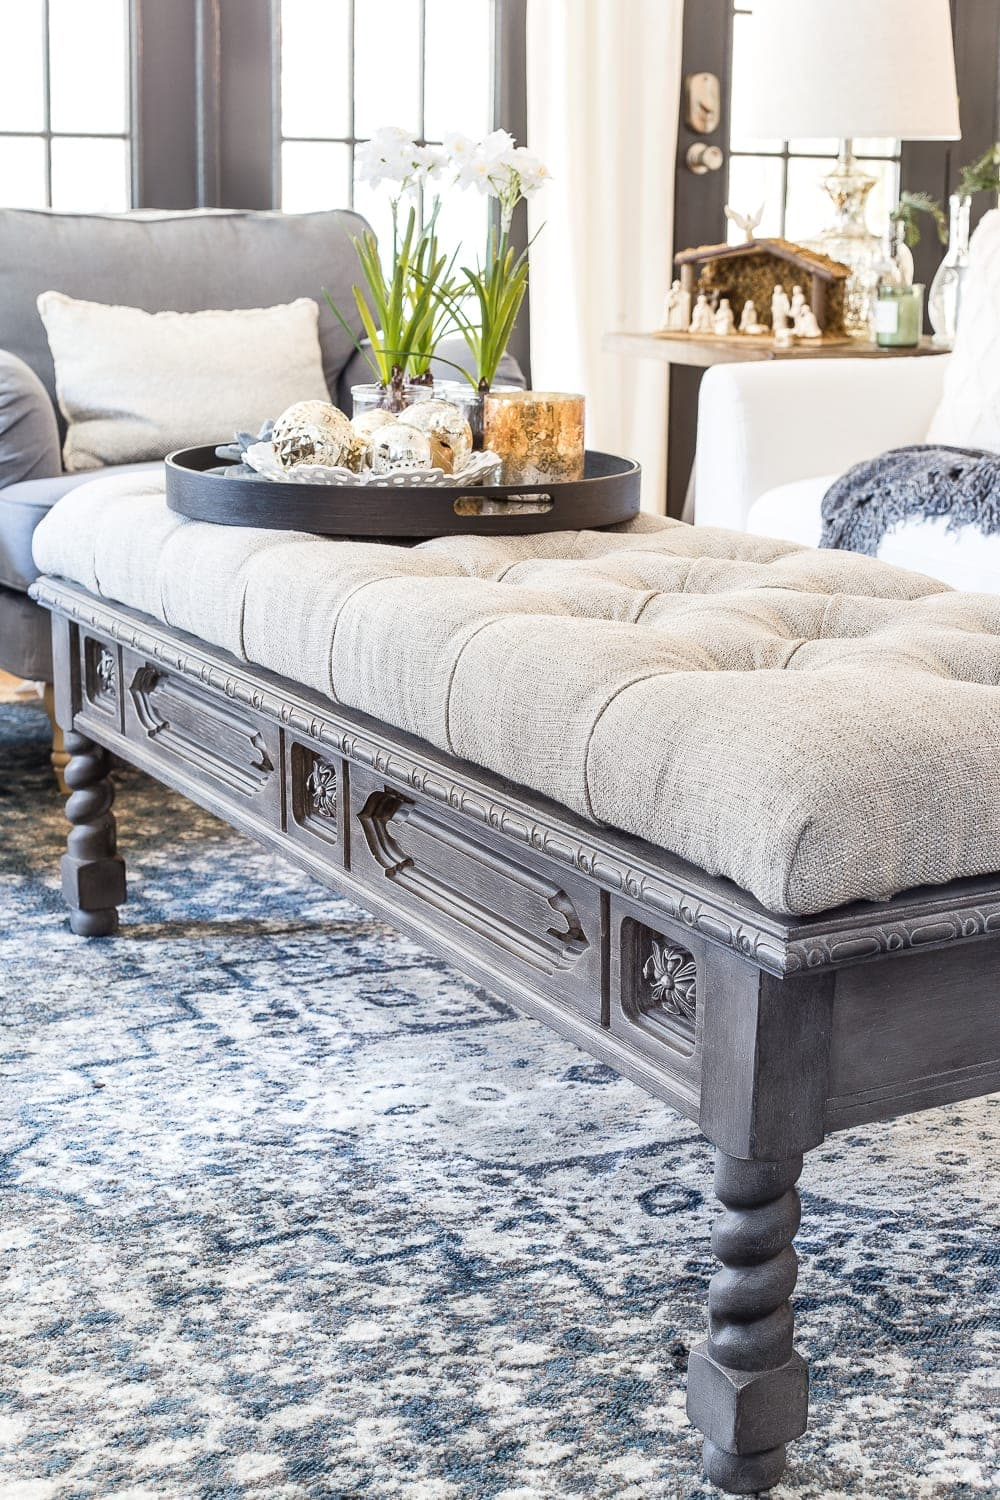 Diy Ottoman Bench From A Repurposed Thrift Coffee Table Blesserhouse How